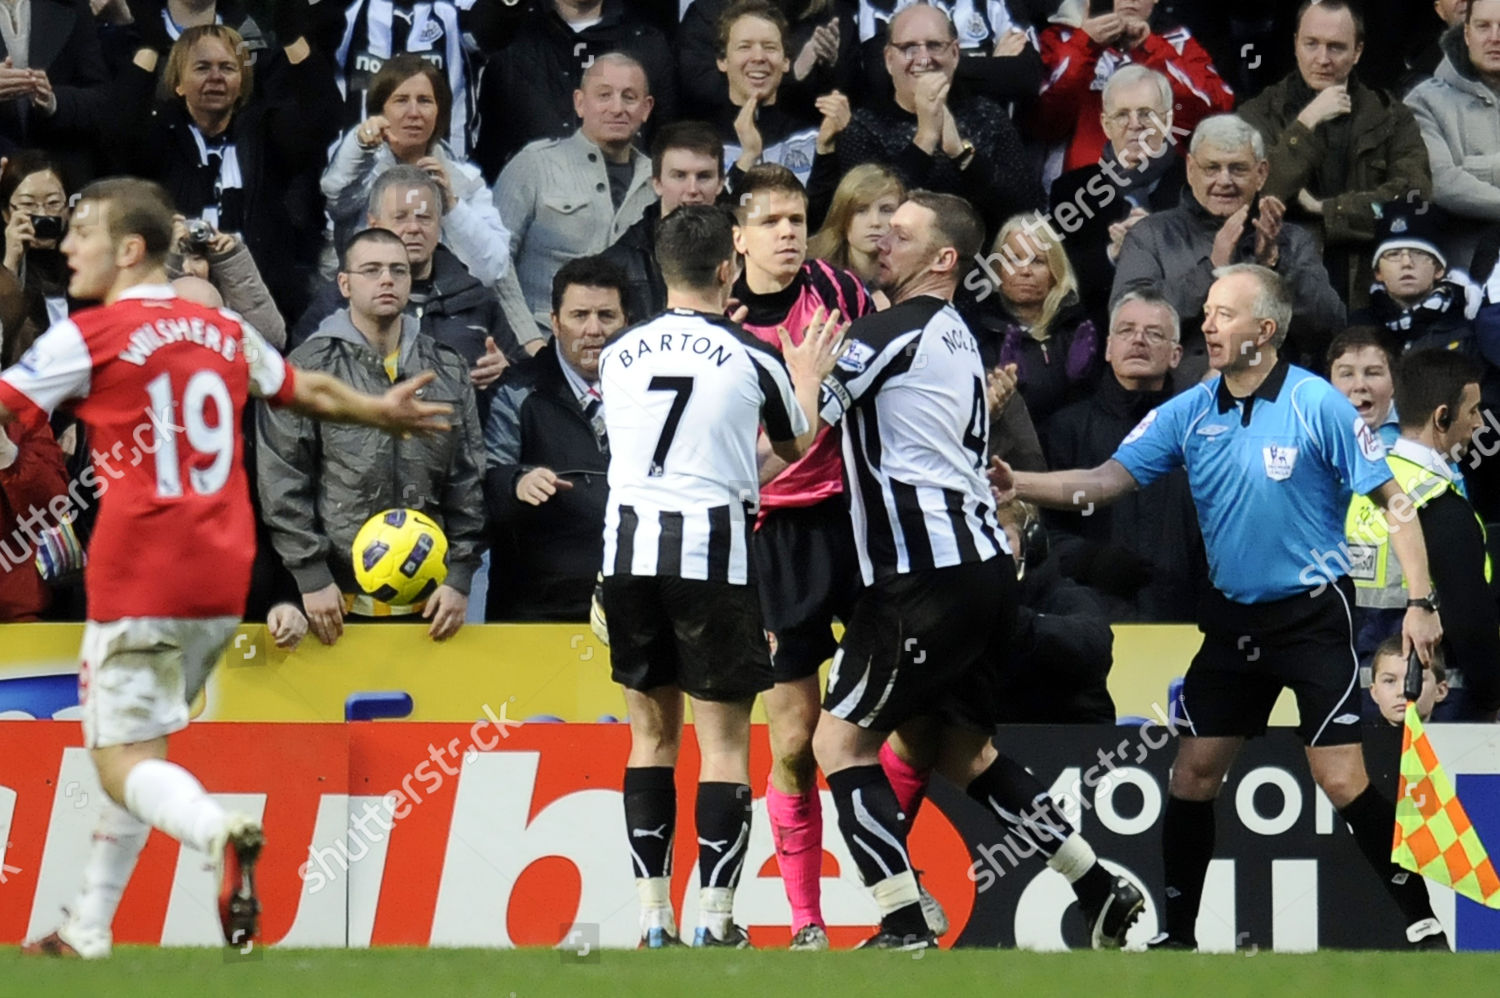 Football Premier League Newcastle United Vs Arsenal Editorial Stock Photo Stock Image Shutterstock